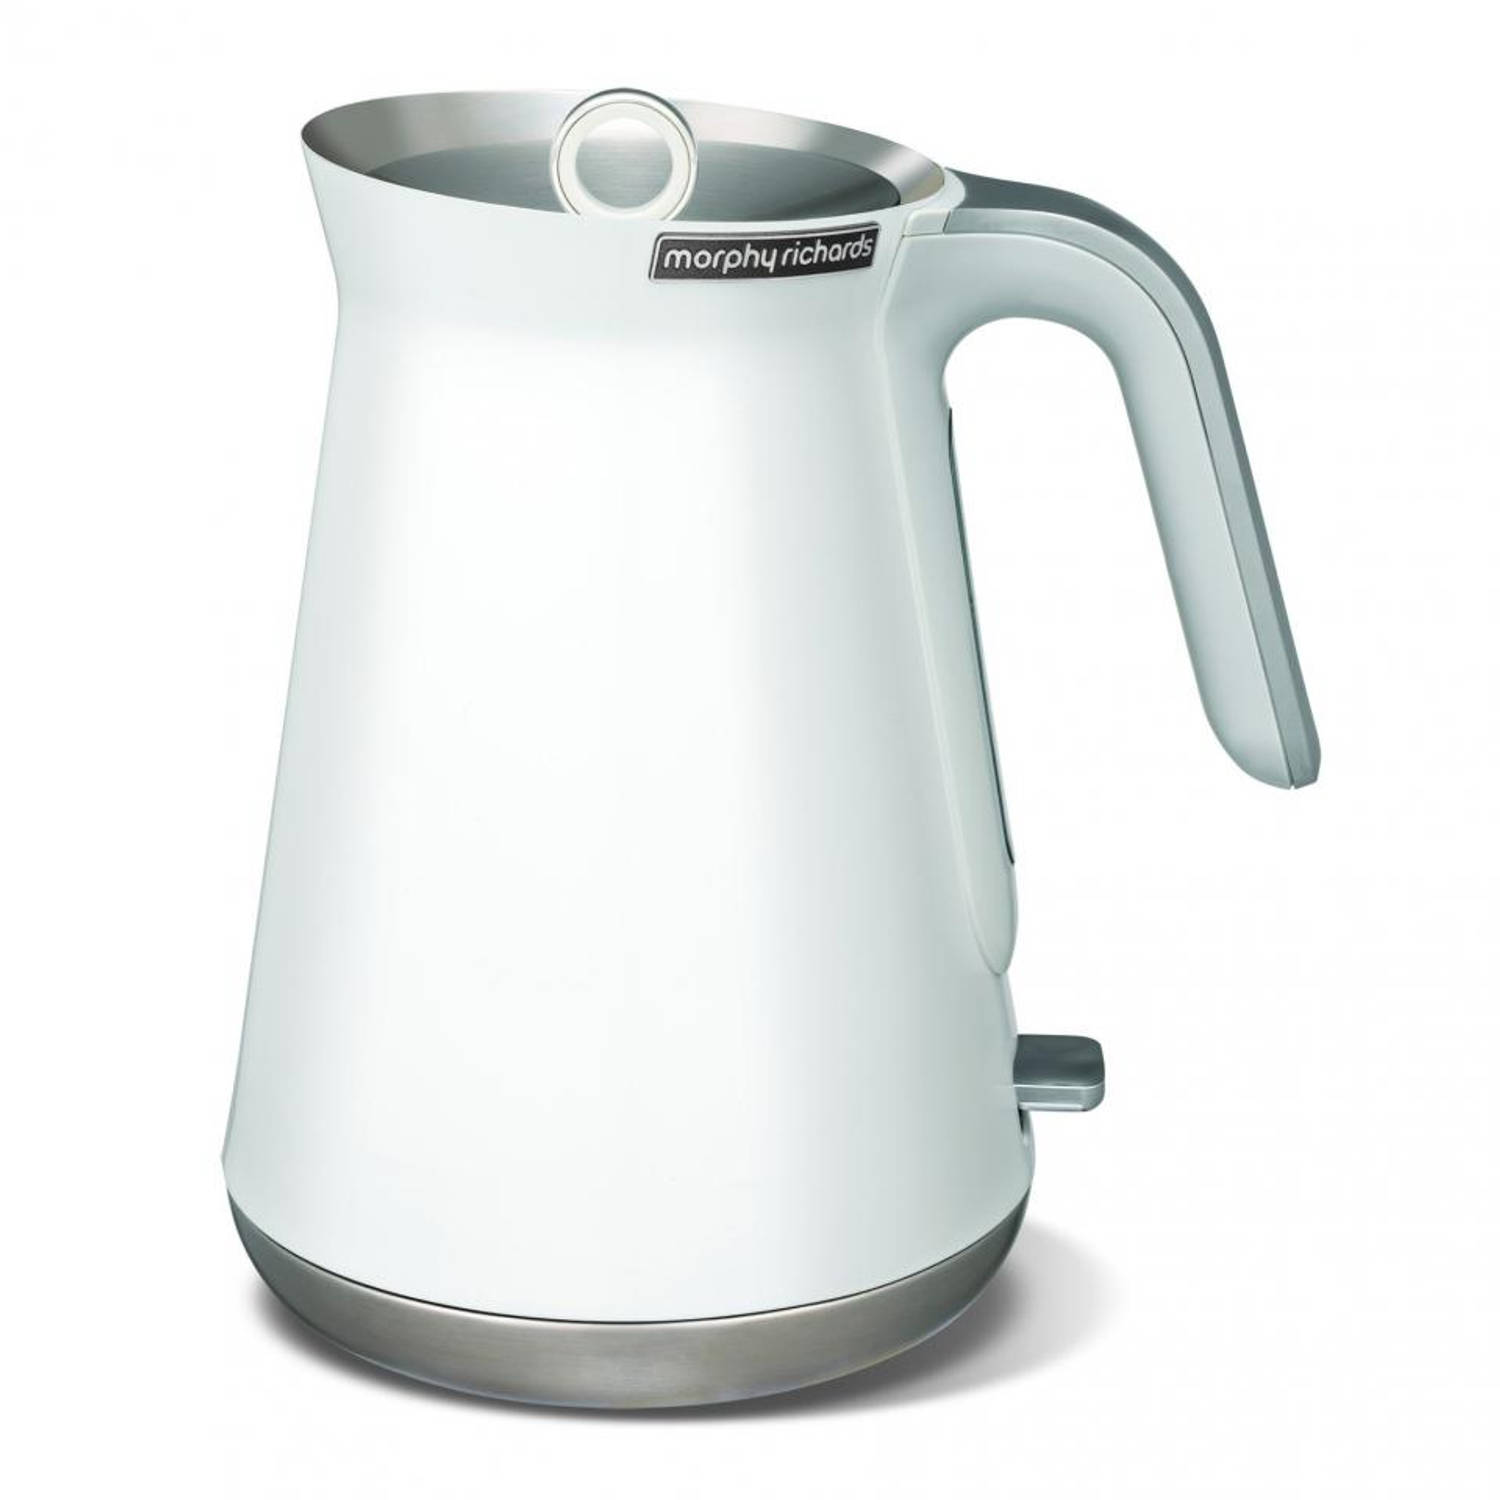 Morphy Richards waterkoker Aspect - wit